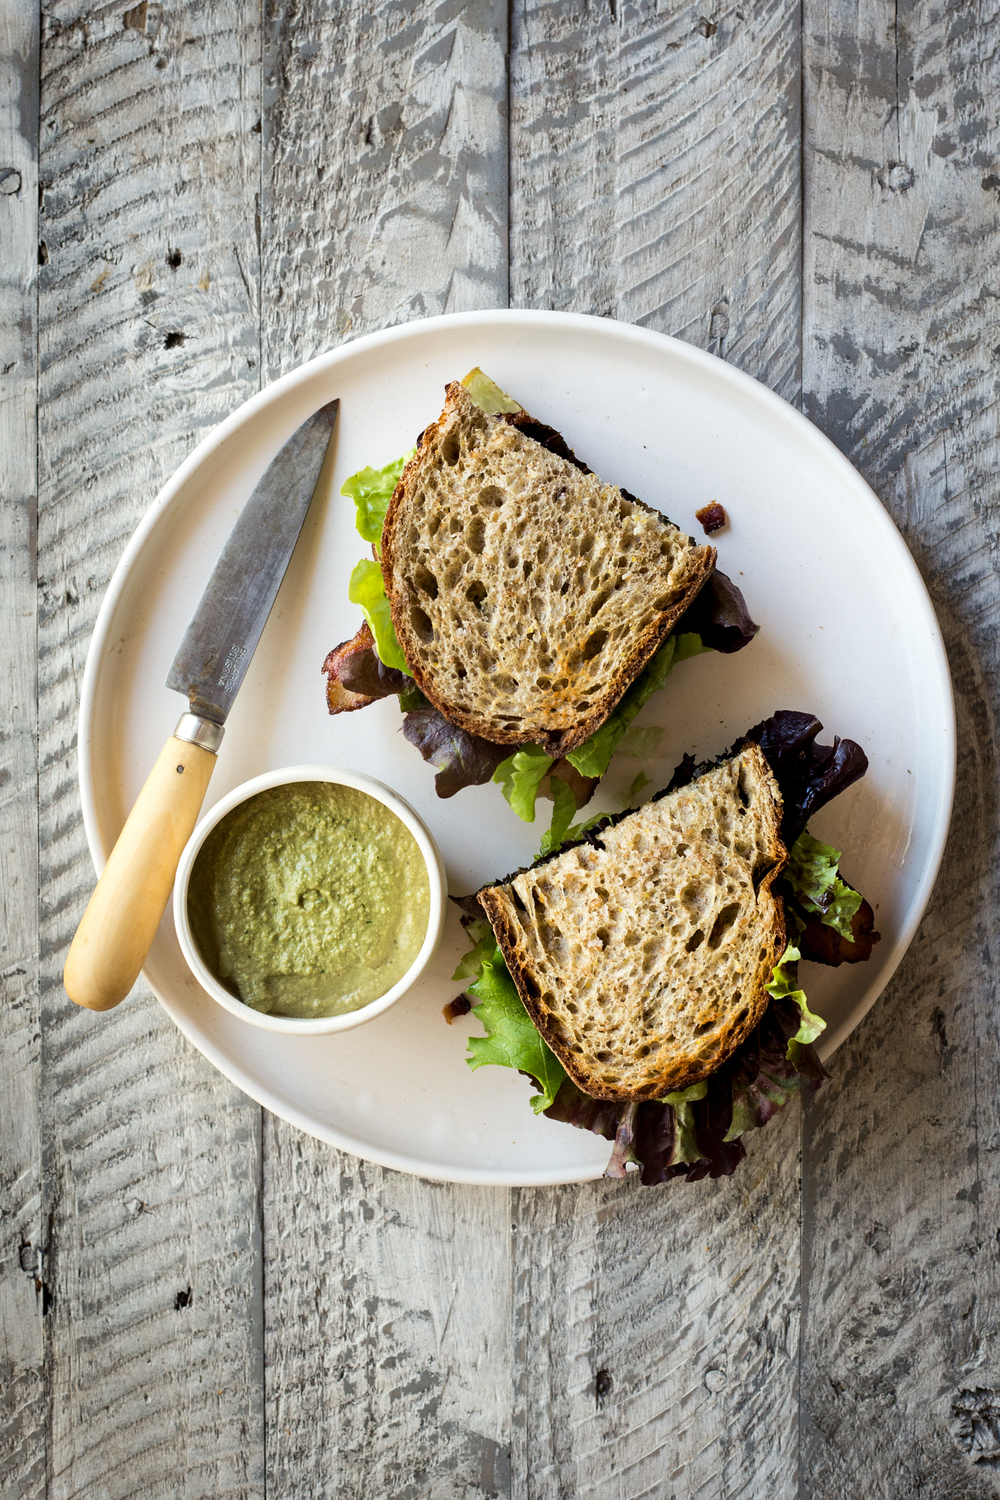 Bacon Lettuce & Kohlrabi Sandwich with Herbed-Cashew Sauce